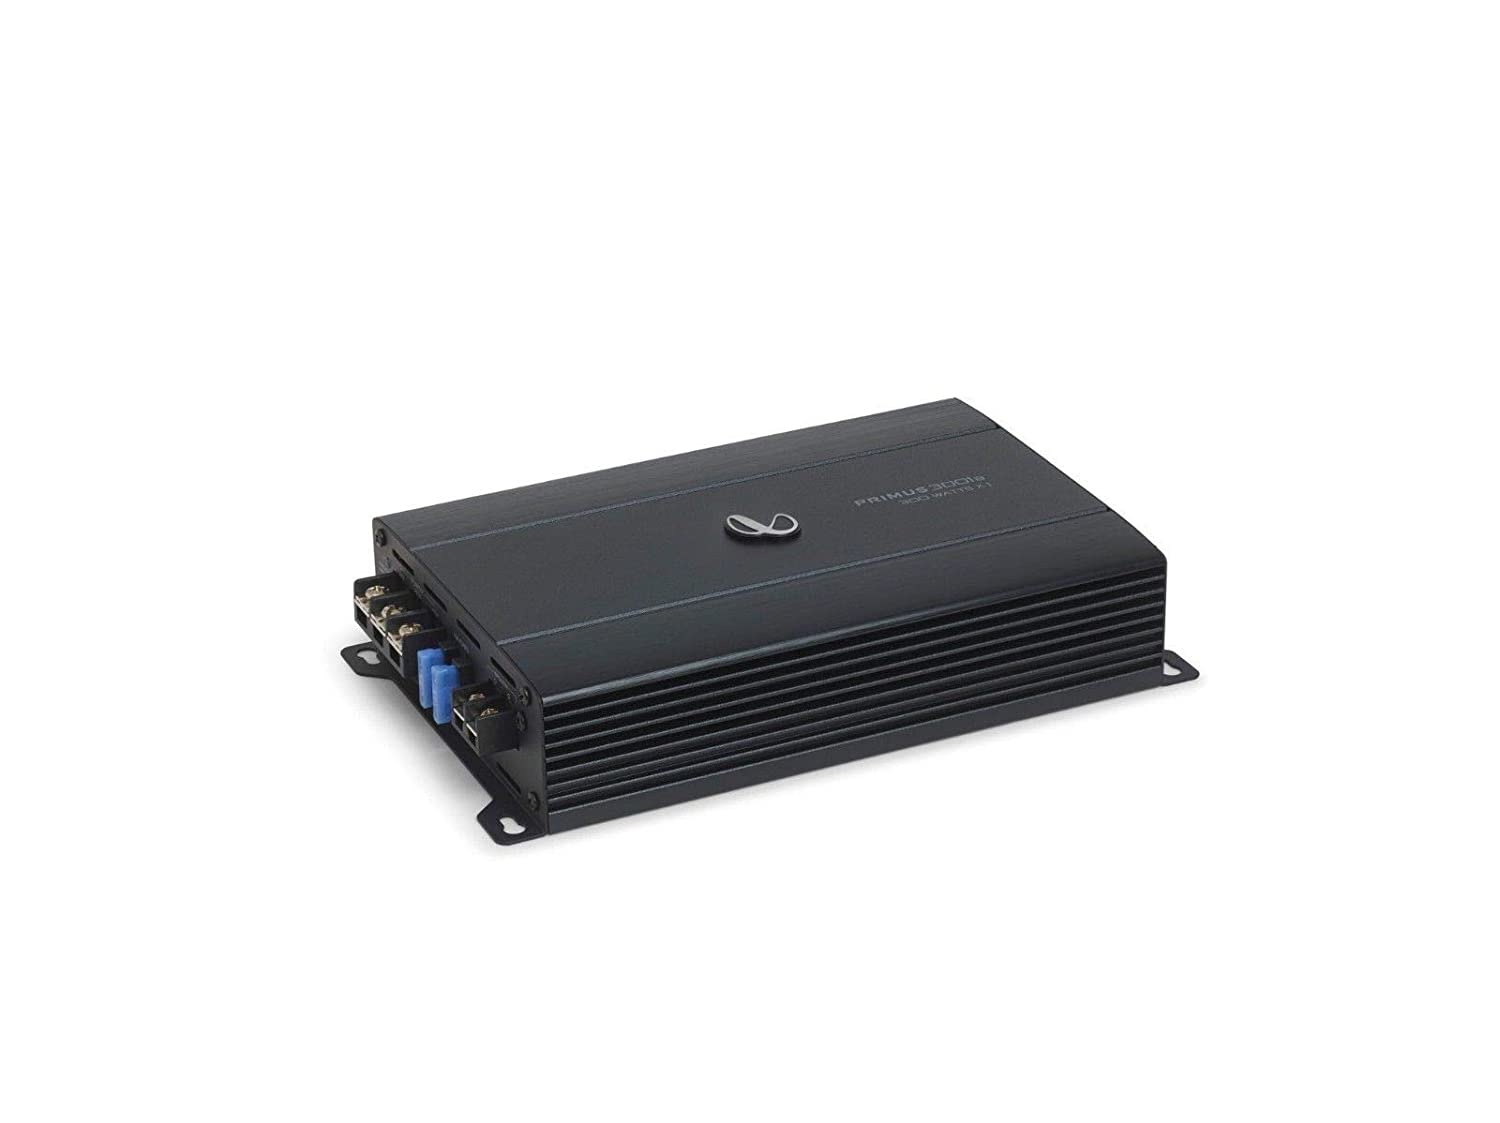 Infinity PRIMUS-3000A Primus 1-Channel 250w X 1 Subwoofer amplifier